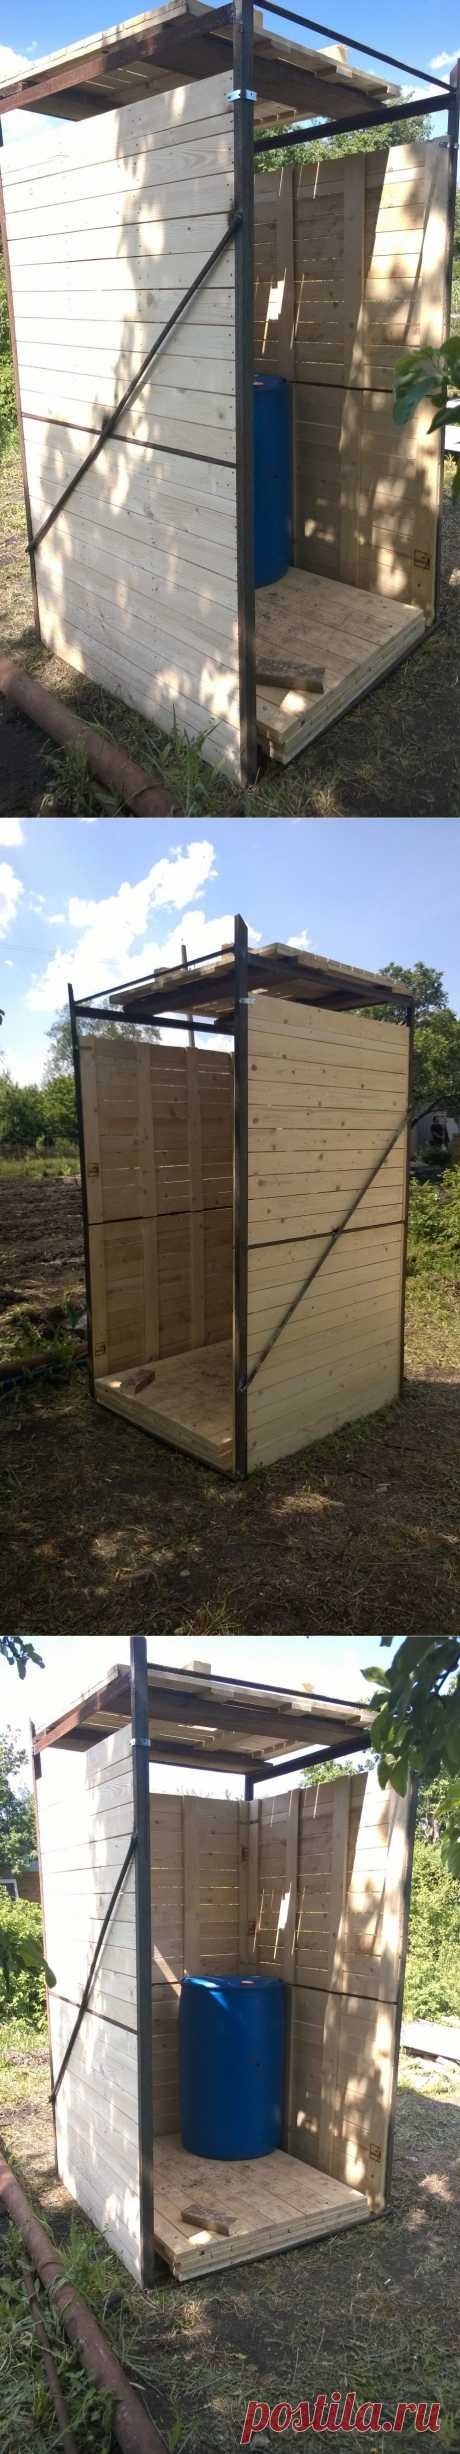 """The competition \""""Water at the Dacha\"""" on 7dach.ru - Summer shower the hands\u000d\u000a\u000d\u000aHere such here shower was made at the weekend. Welded a framework and sheathed pallets. So far the barrel was not set up on a roof, but we will make it soon. And a zanavesochka of course on an entrance. All works took literally 3-4 hours of time. Quickly, cheap but good)))"""